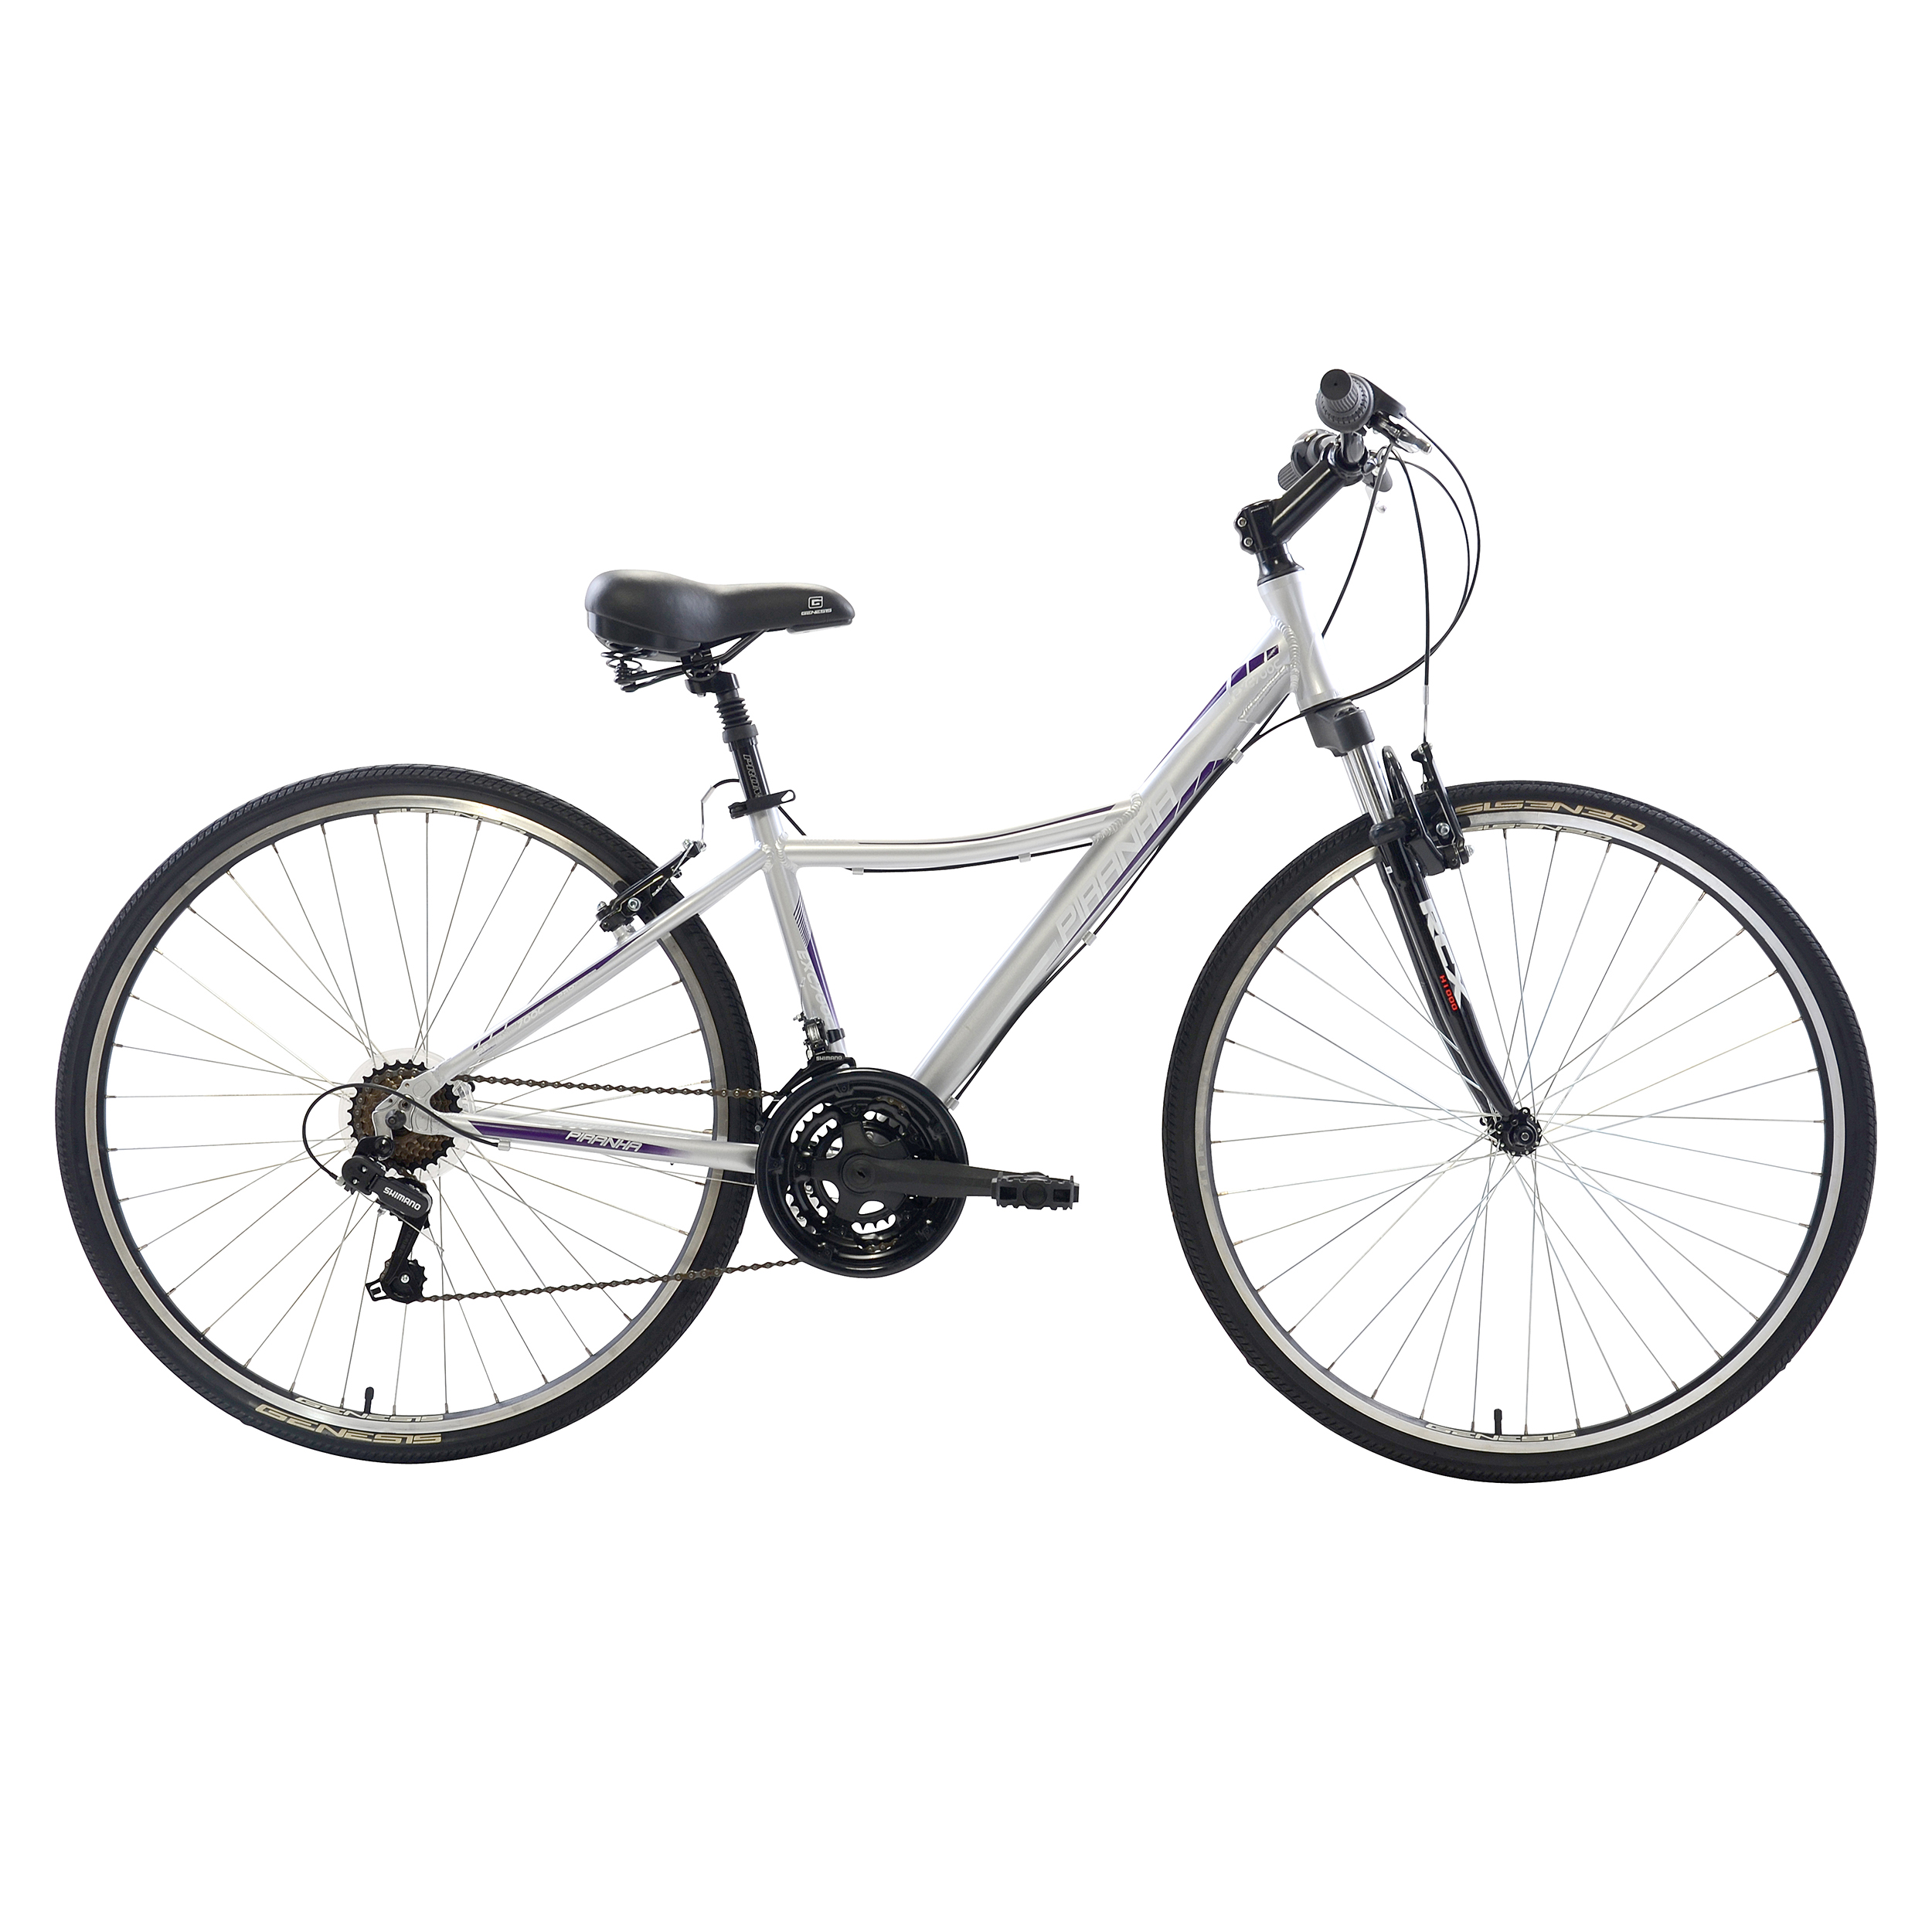 Piranha Women's 21 Speed City Bike